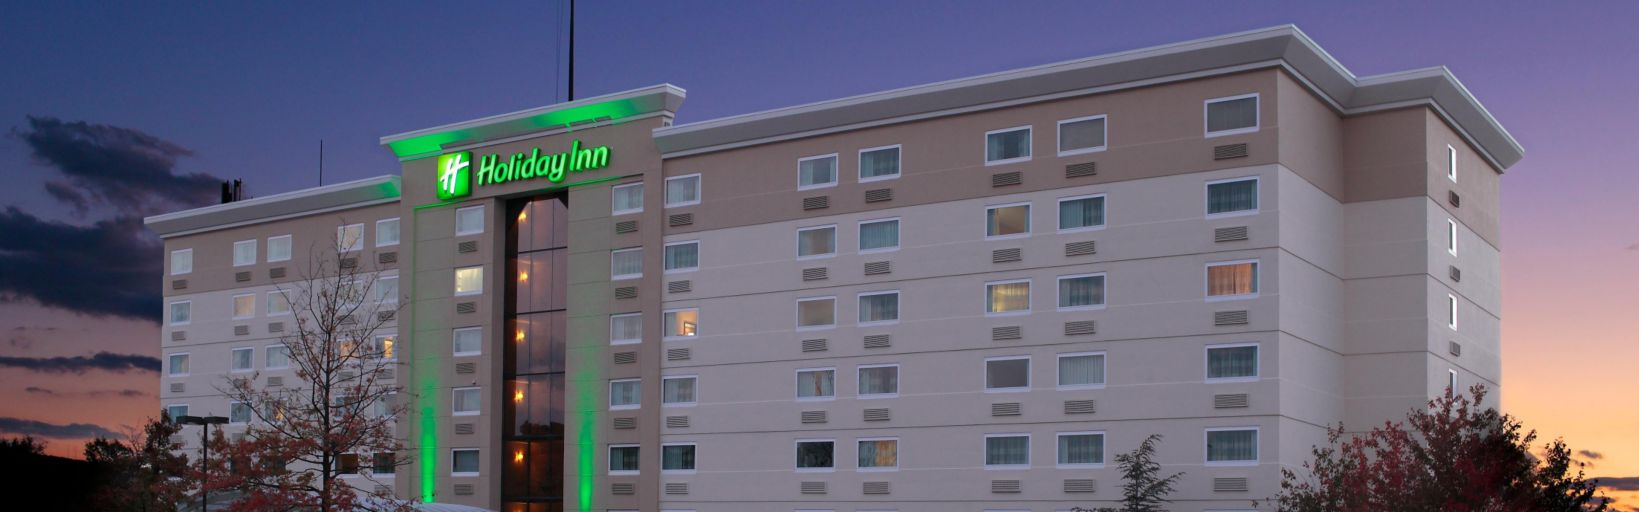 Bell Furniture Wilkes Barre Exterior hotel in wilkes barre, pa  holiday inn wilkes barre, pennsylvania